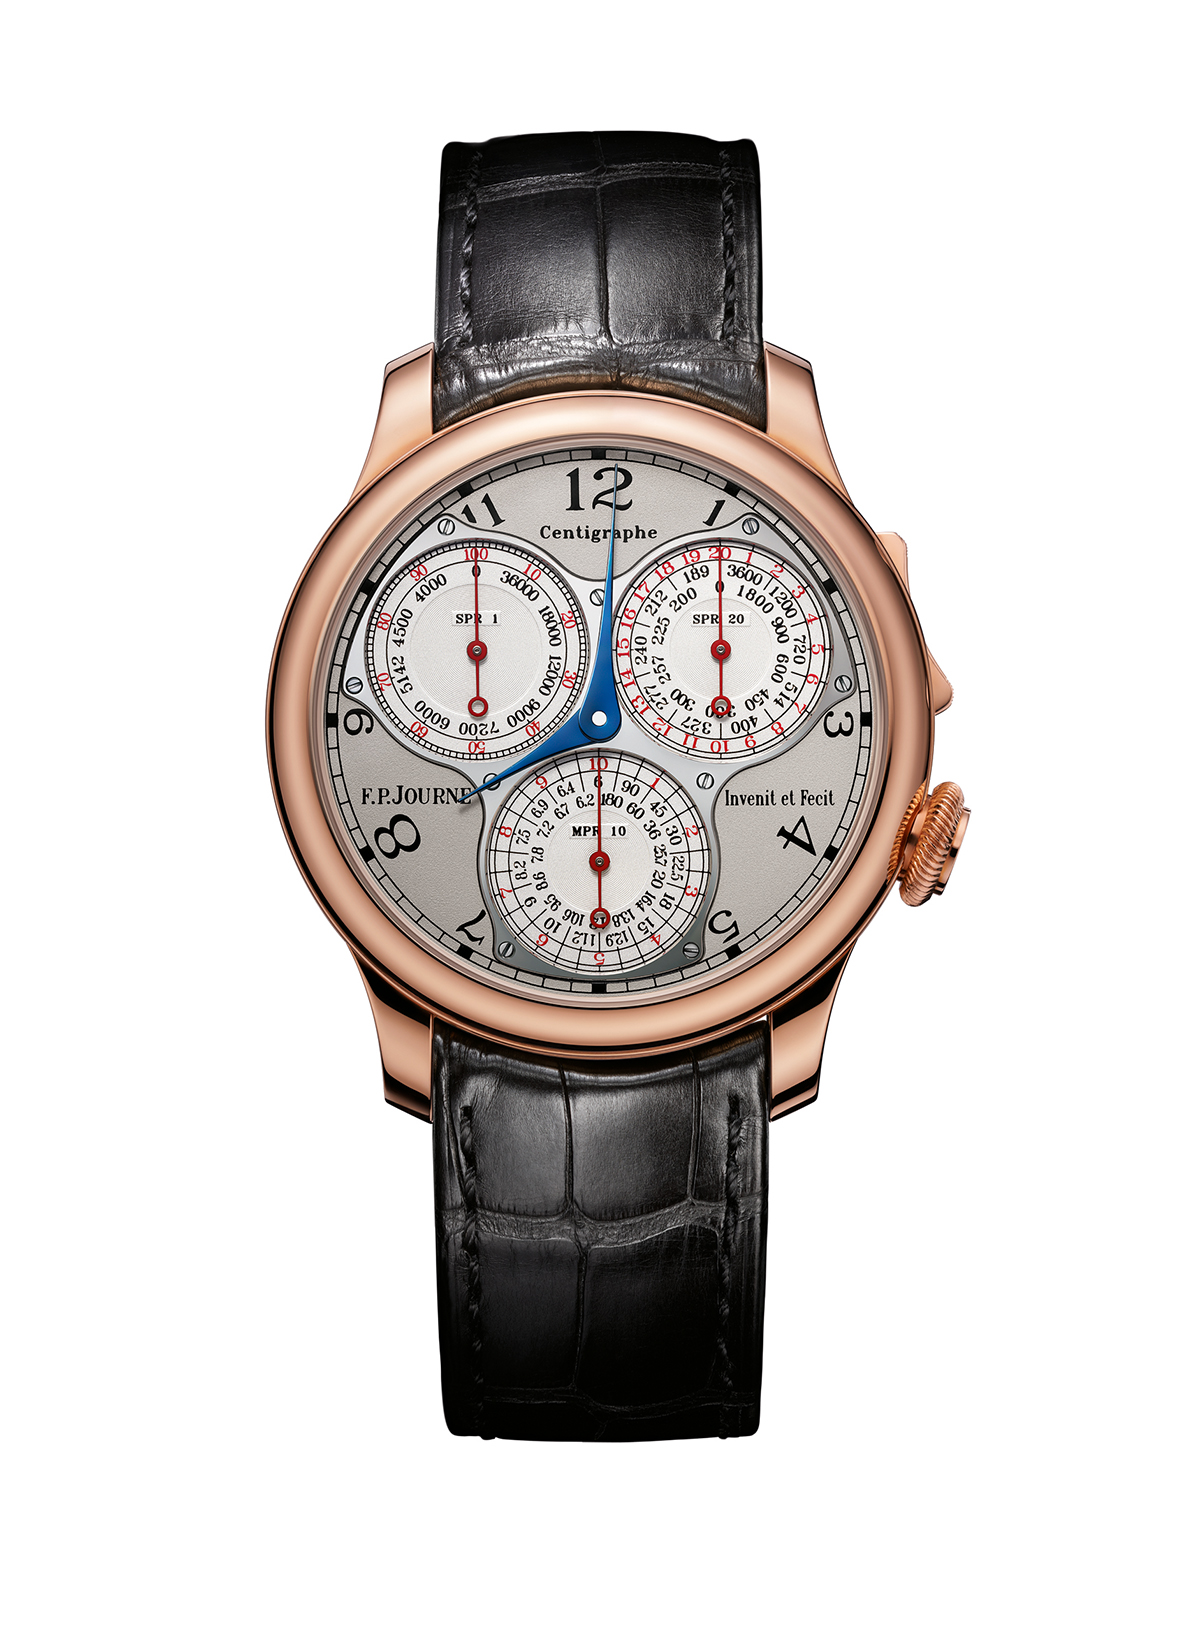 Silver-finish dial, rose gold case